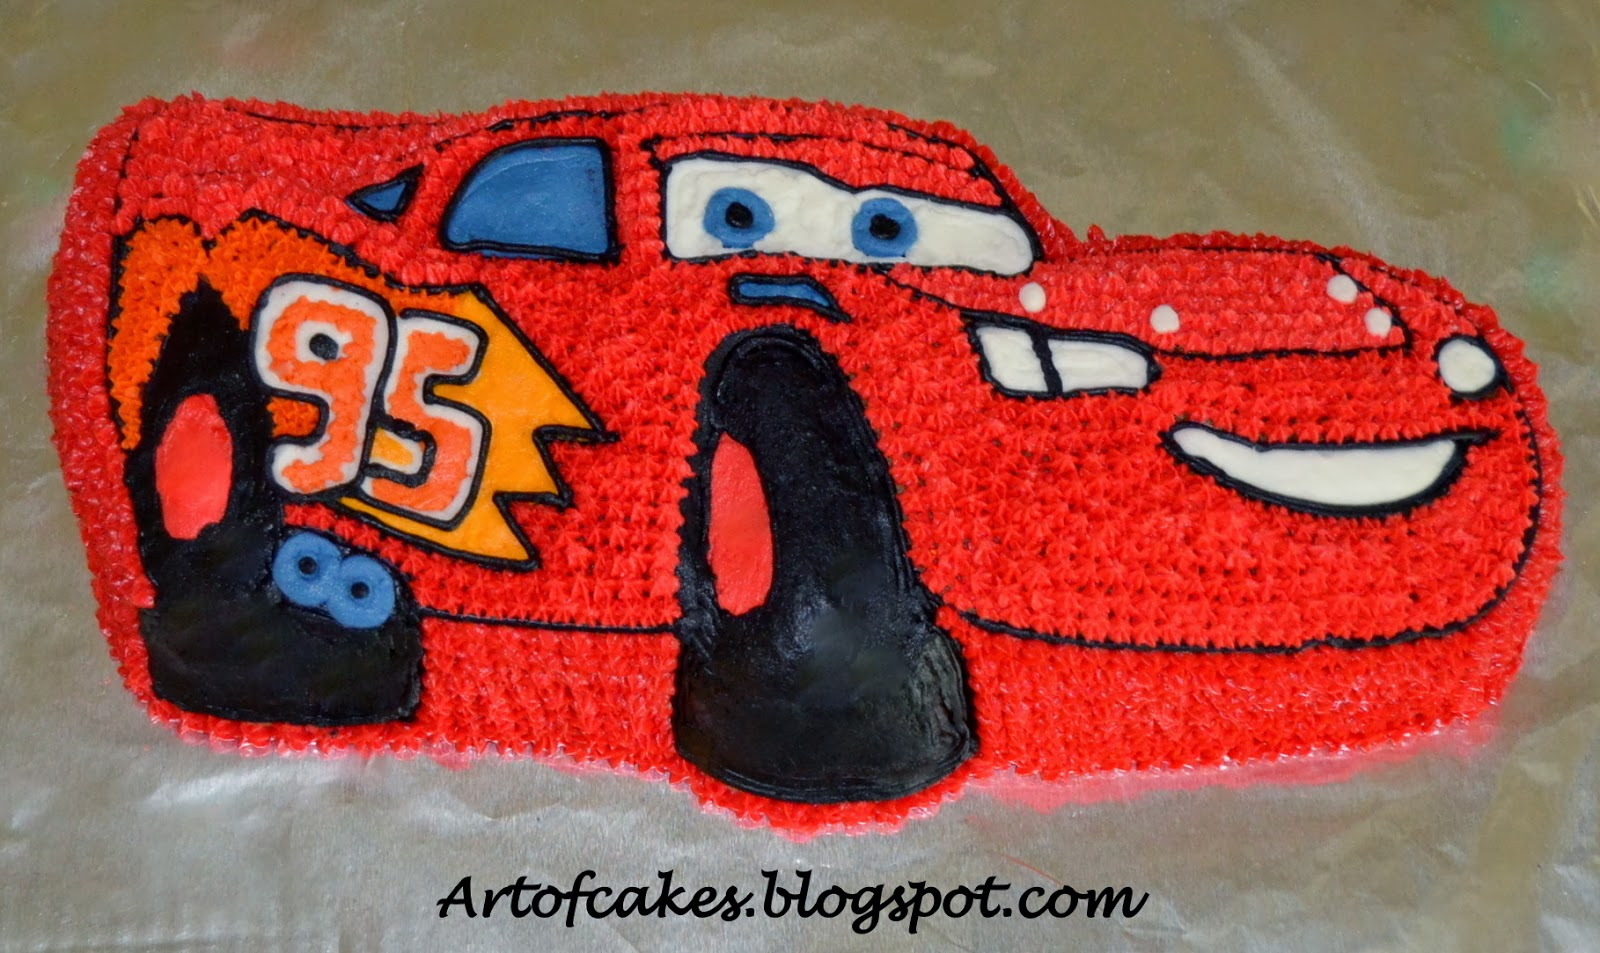 Vroom This Lightning McQueen Cake Is For A Little Boy Abhijay Who Loves Cars I Made